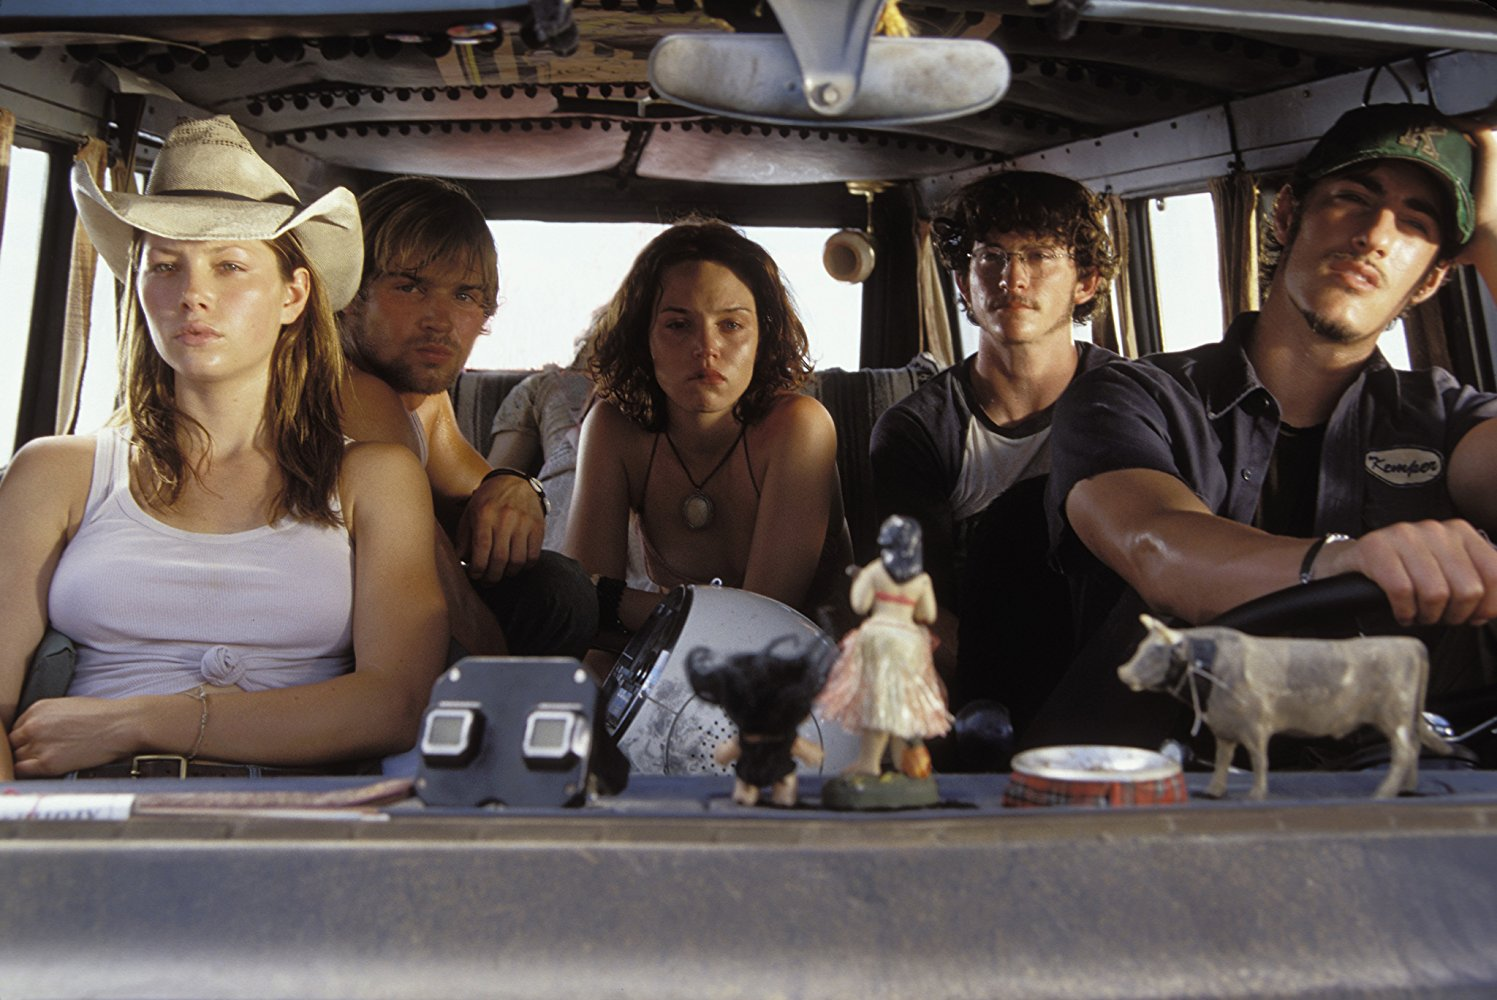 New group of a journey through the Texas backwoods - (l to r) Jessica Biel, Mike Vogel, Erica Leerhsen, Jonathan Tucker, Eric Balfour in The Texas Chainsaw Massacre (2003)